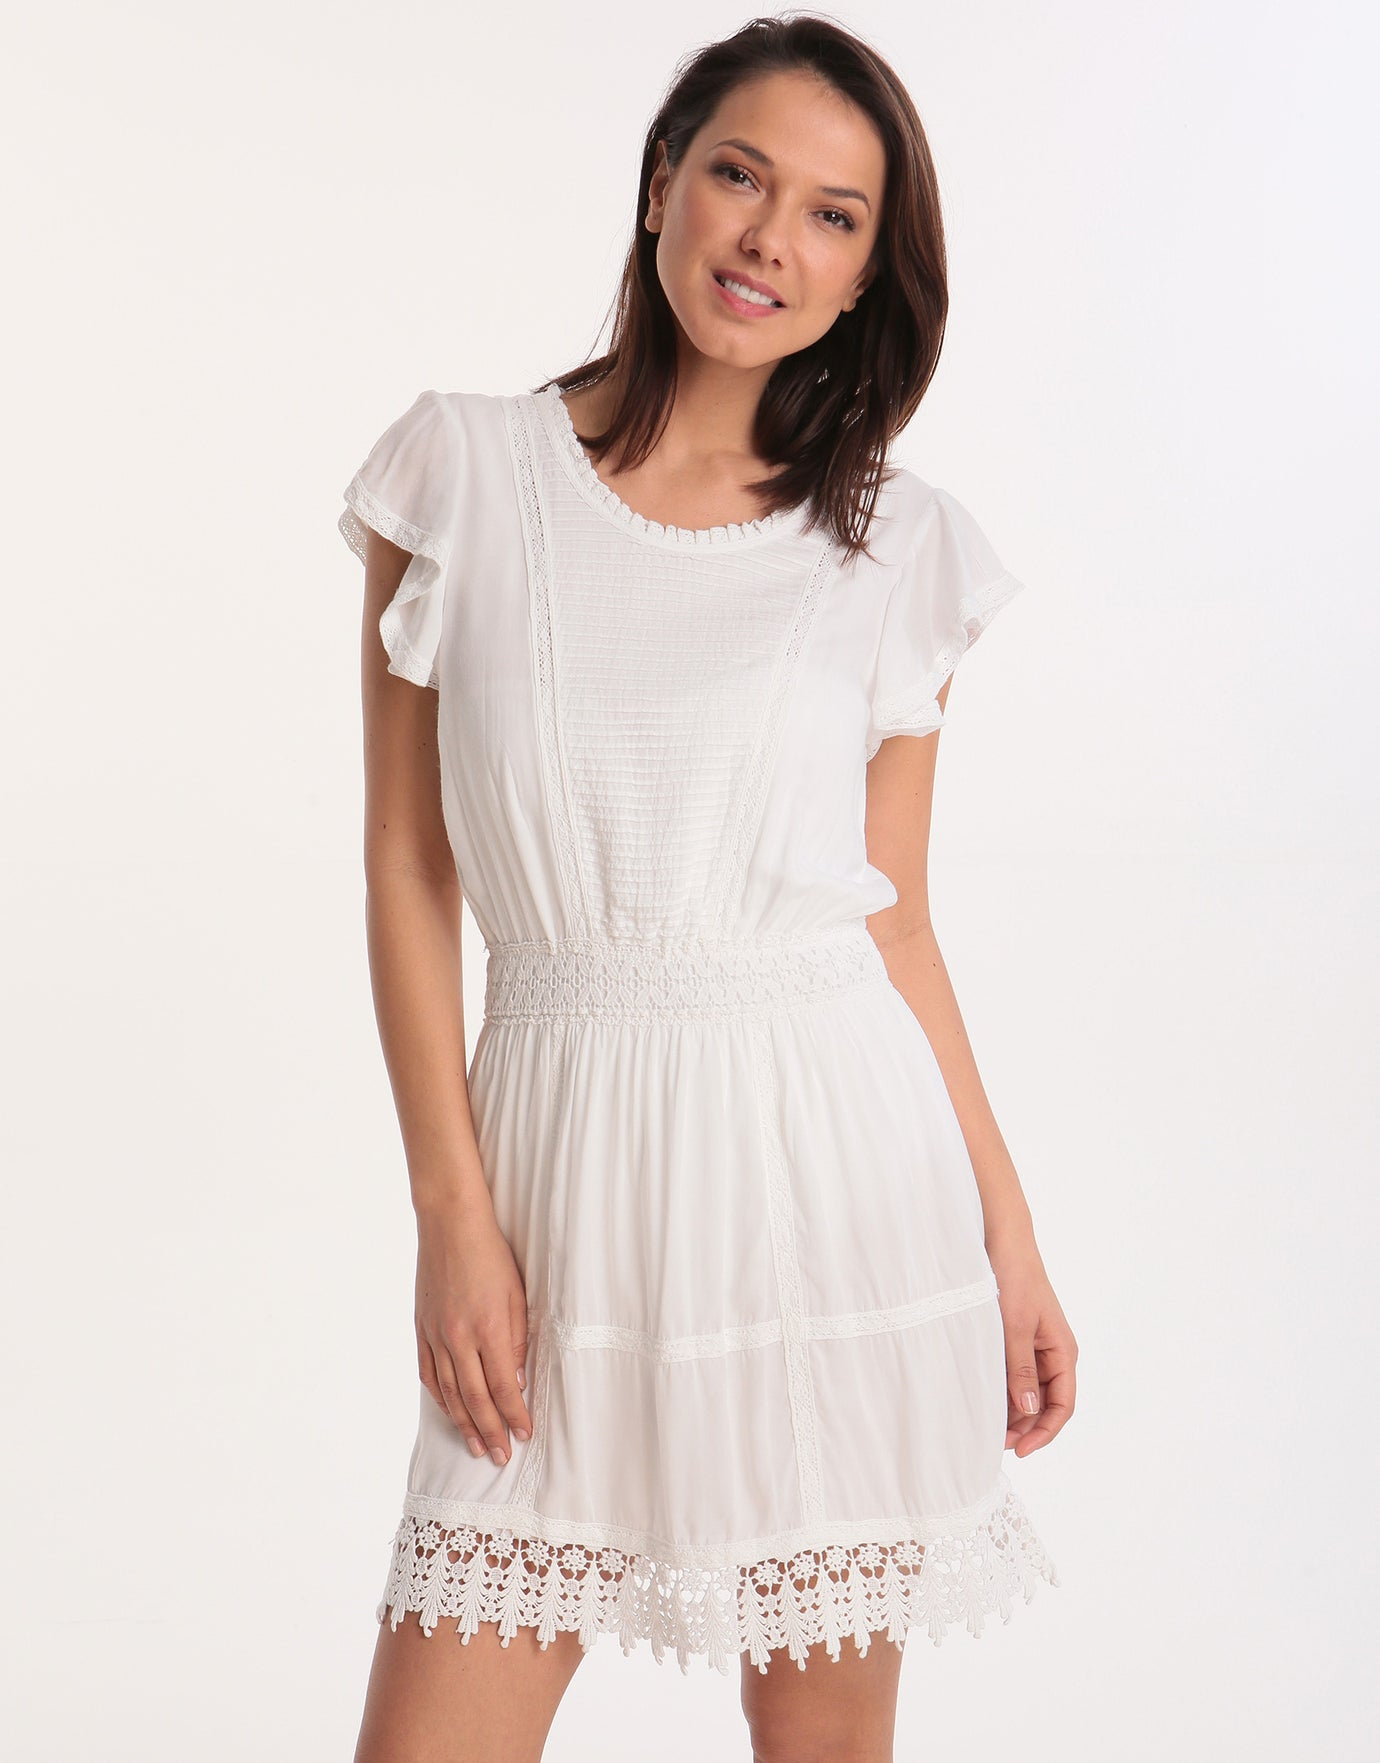 Melissa Odabash Loretta Mini Dress  - White